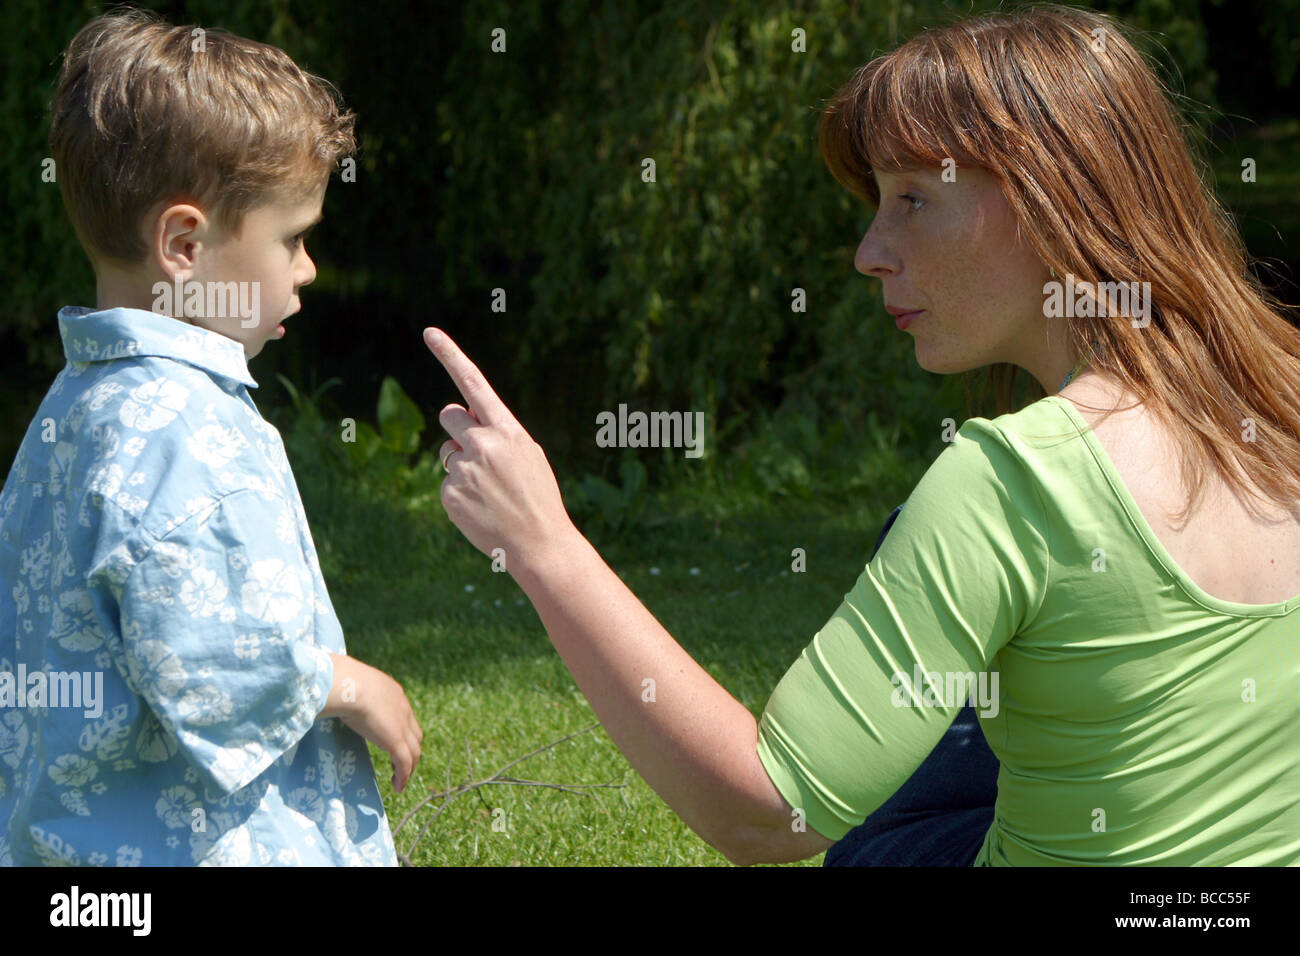 Rebellion little boy told off by his overprotective mother outside, she is warning and pointing at her toddler son Stock Photo